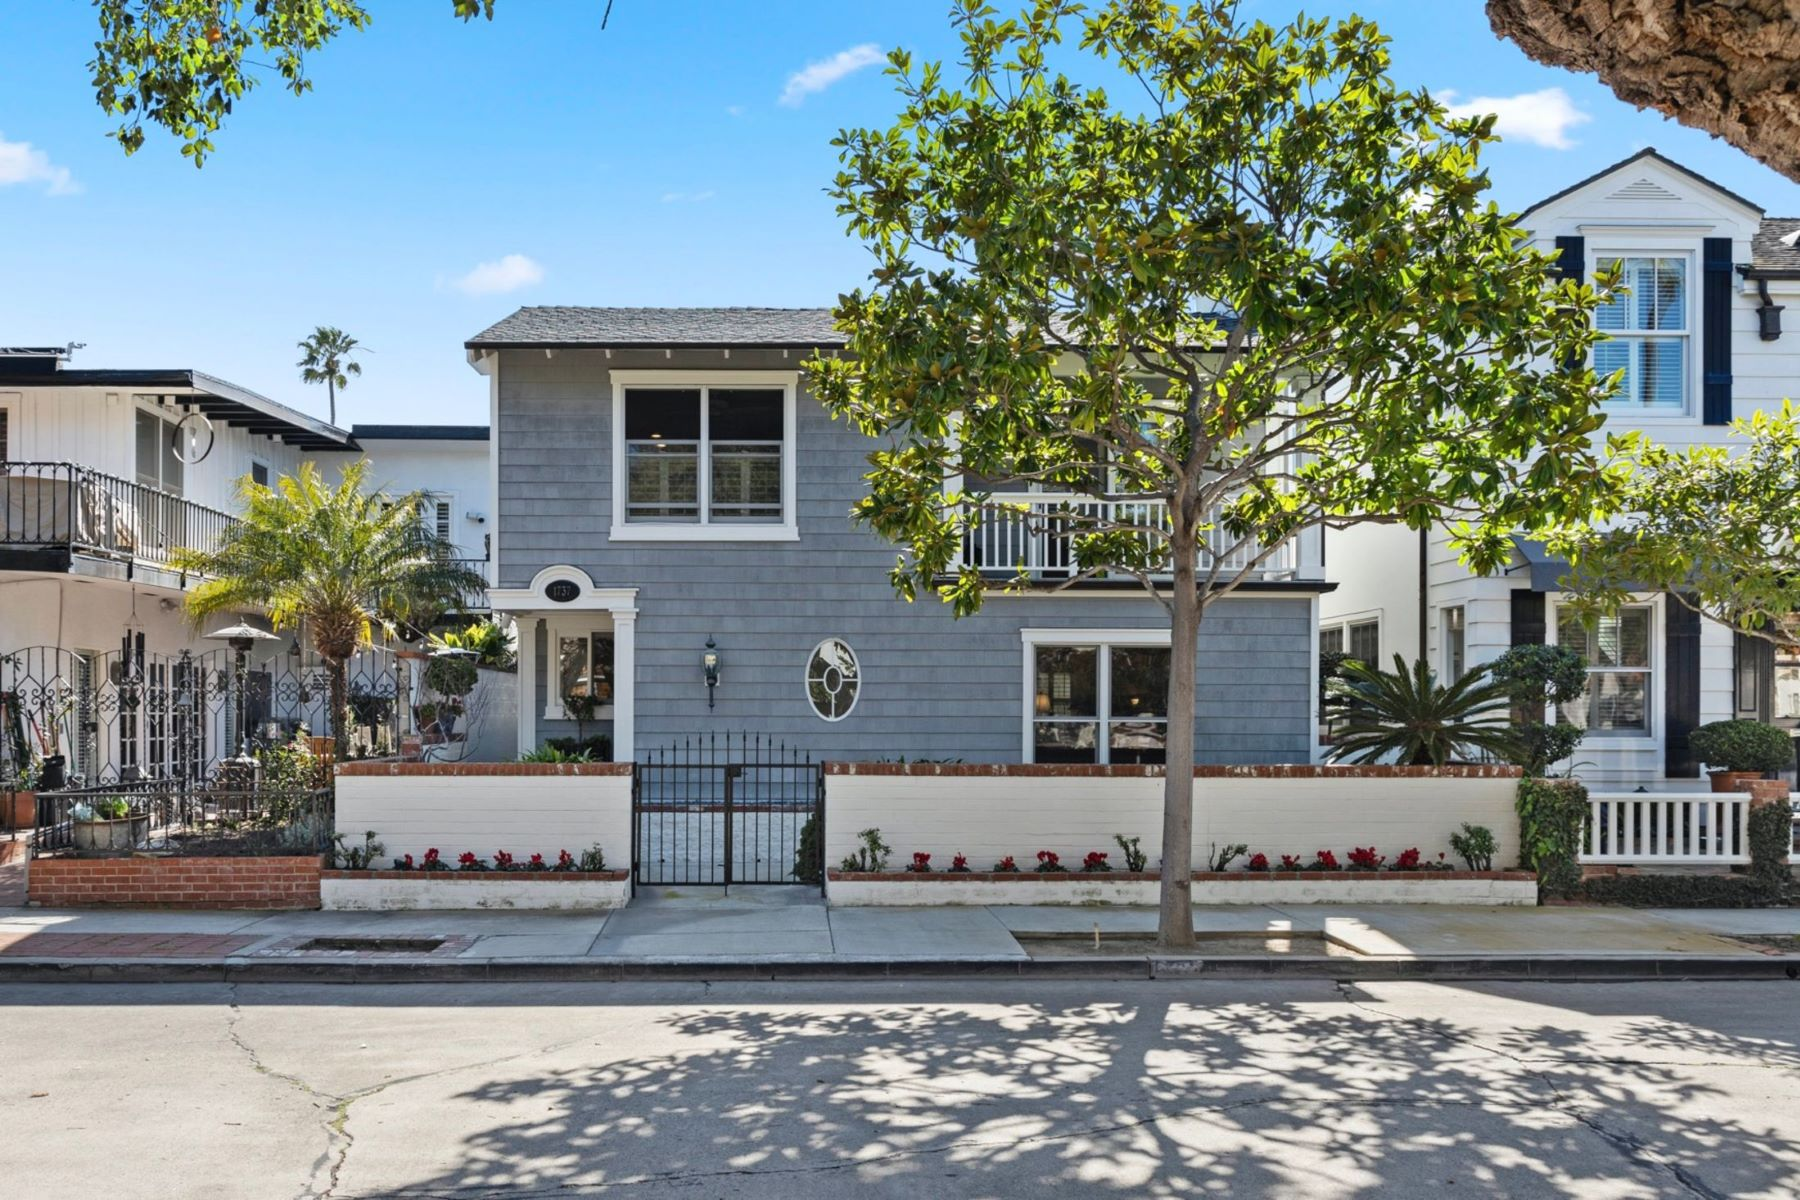 Single Family Homes for Active at 1737 Plaza Del Sur Newport Beach, California 92661 United States